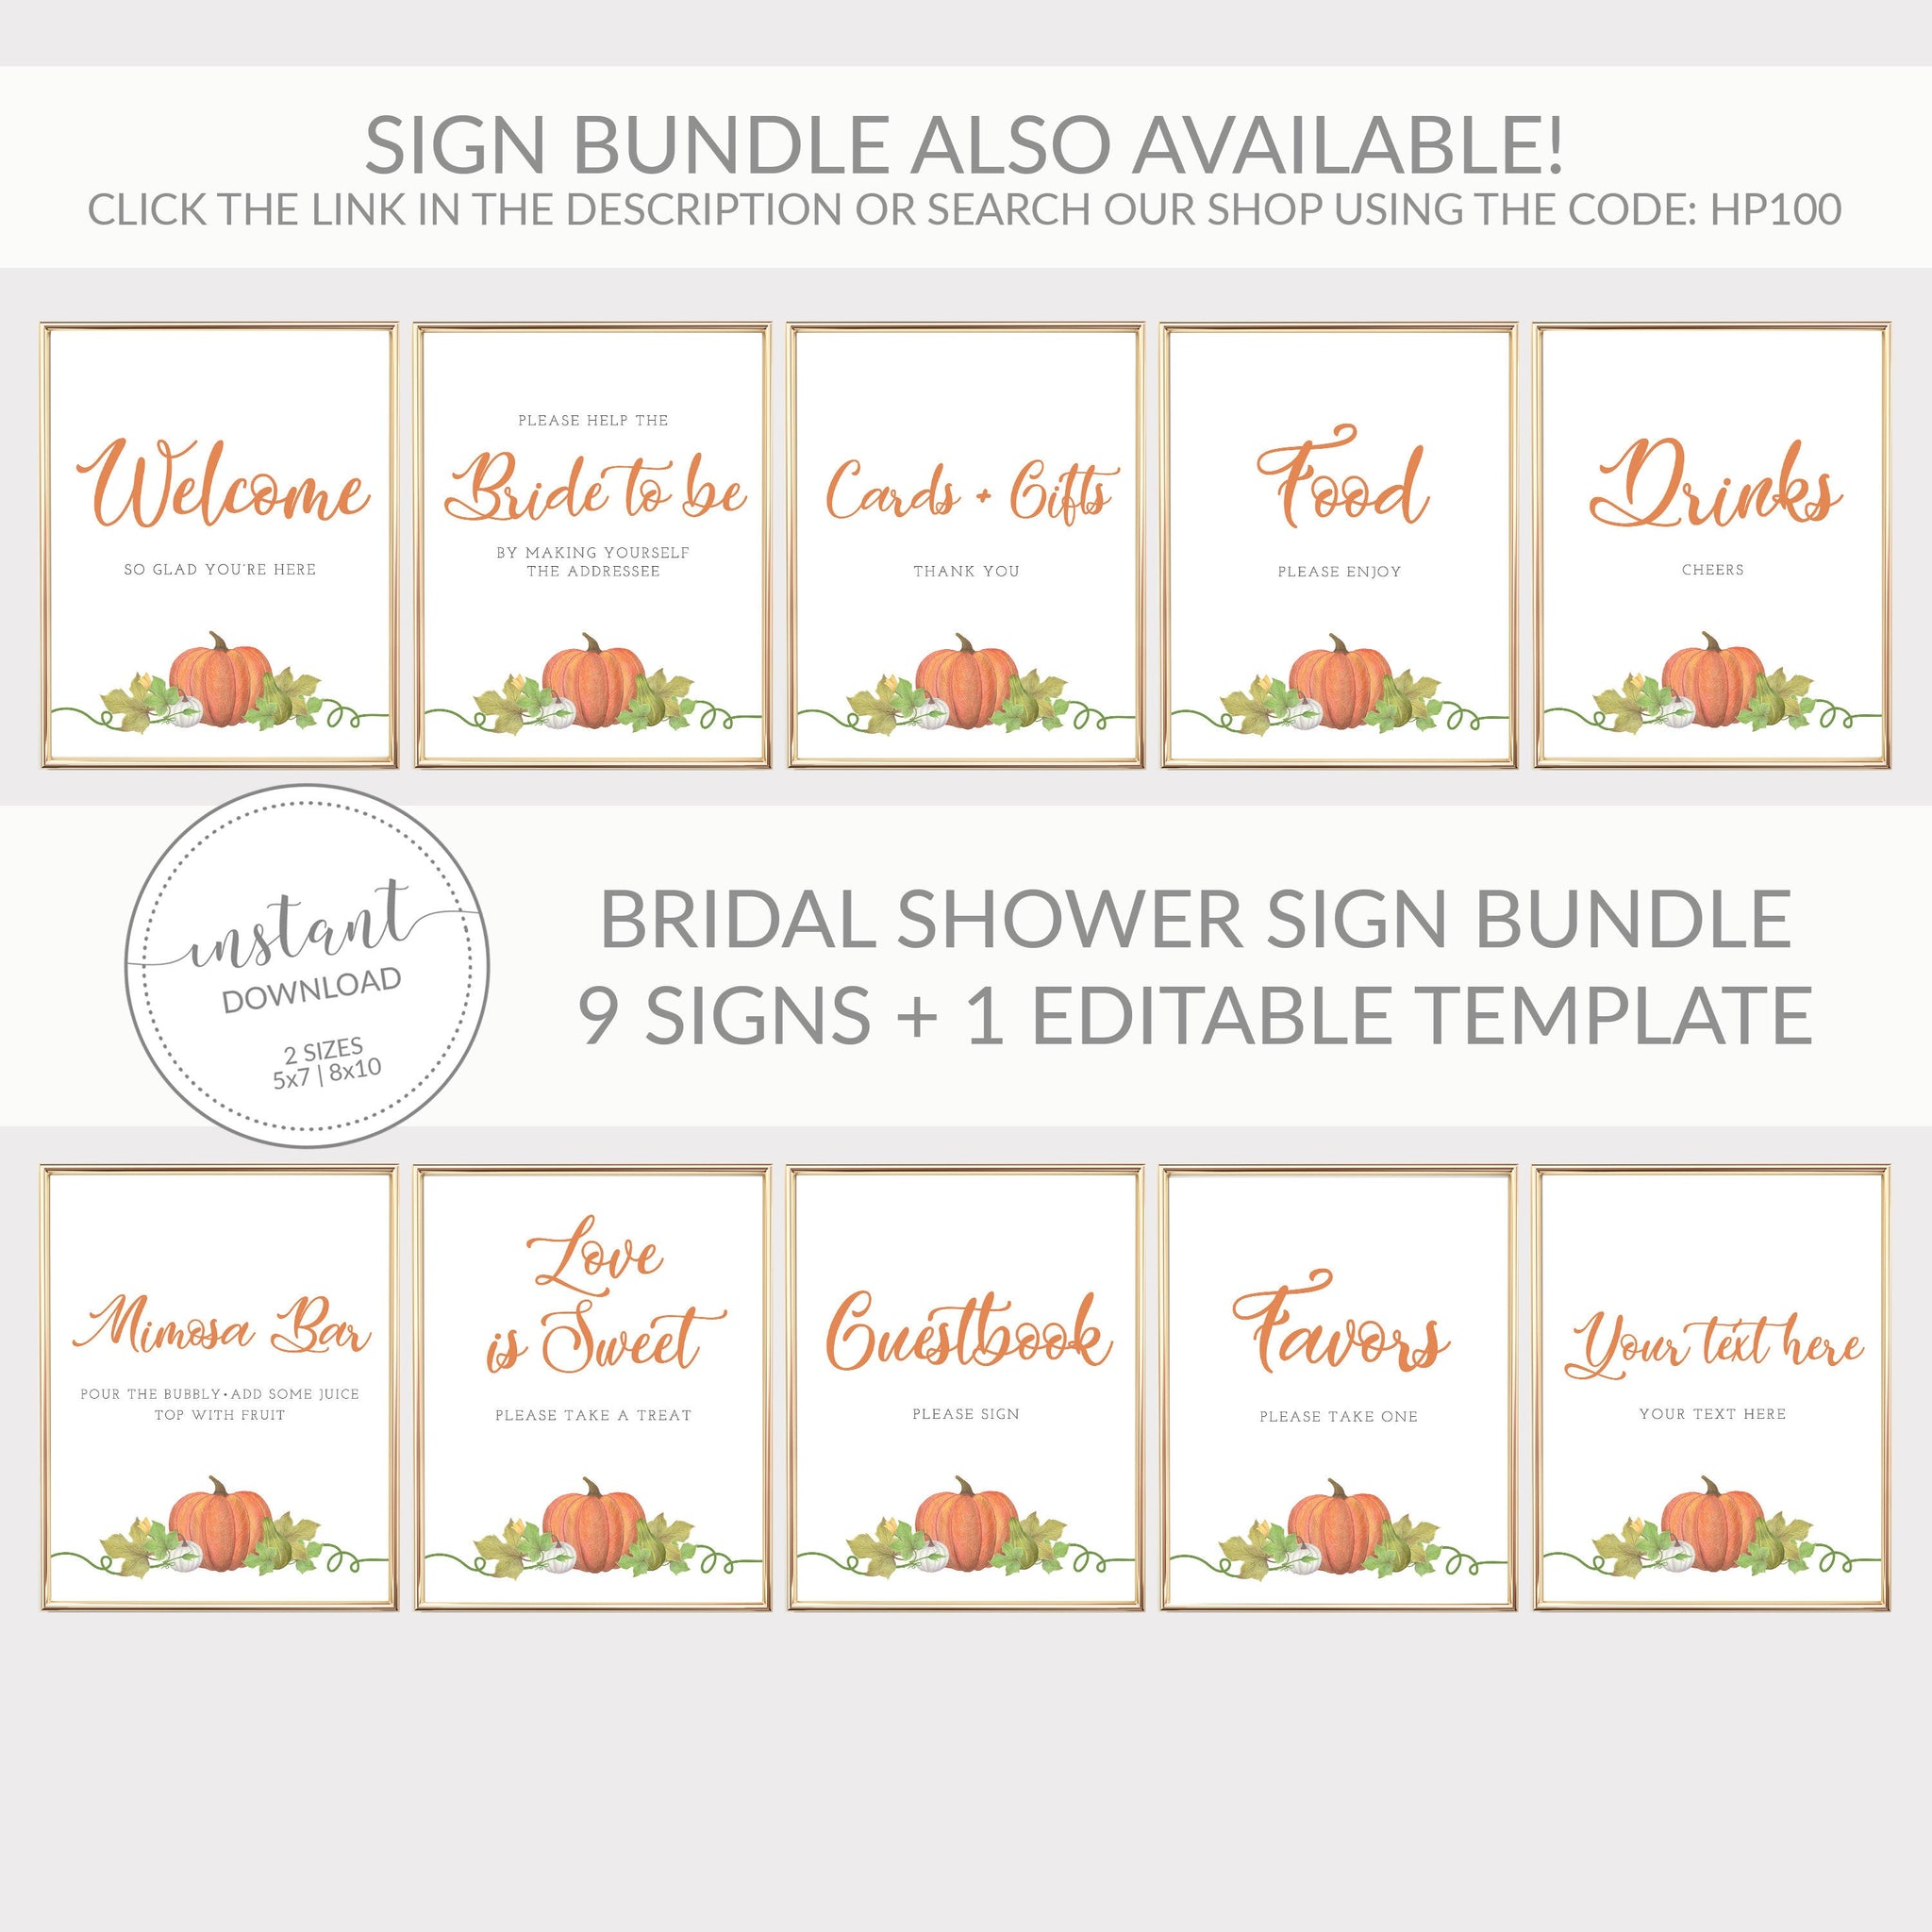 Pumpkin Bridal Shower Address an Envelope Sign INSTANT DOWNLOAD, Help The Bride Addressee Sign, Pumpkin Bridal Shower Decorations - HP100 - @PlumPolkaDot